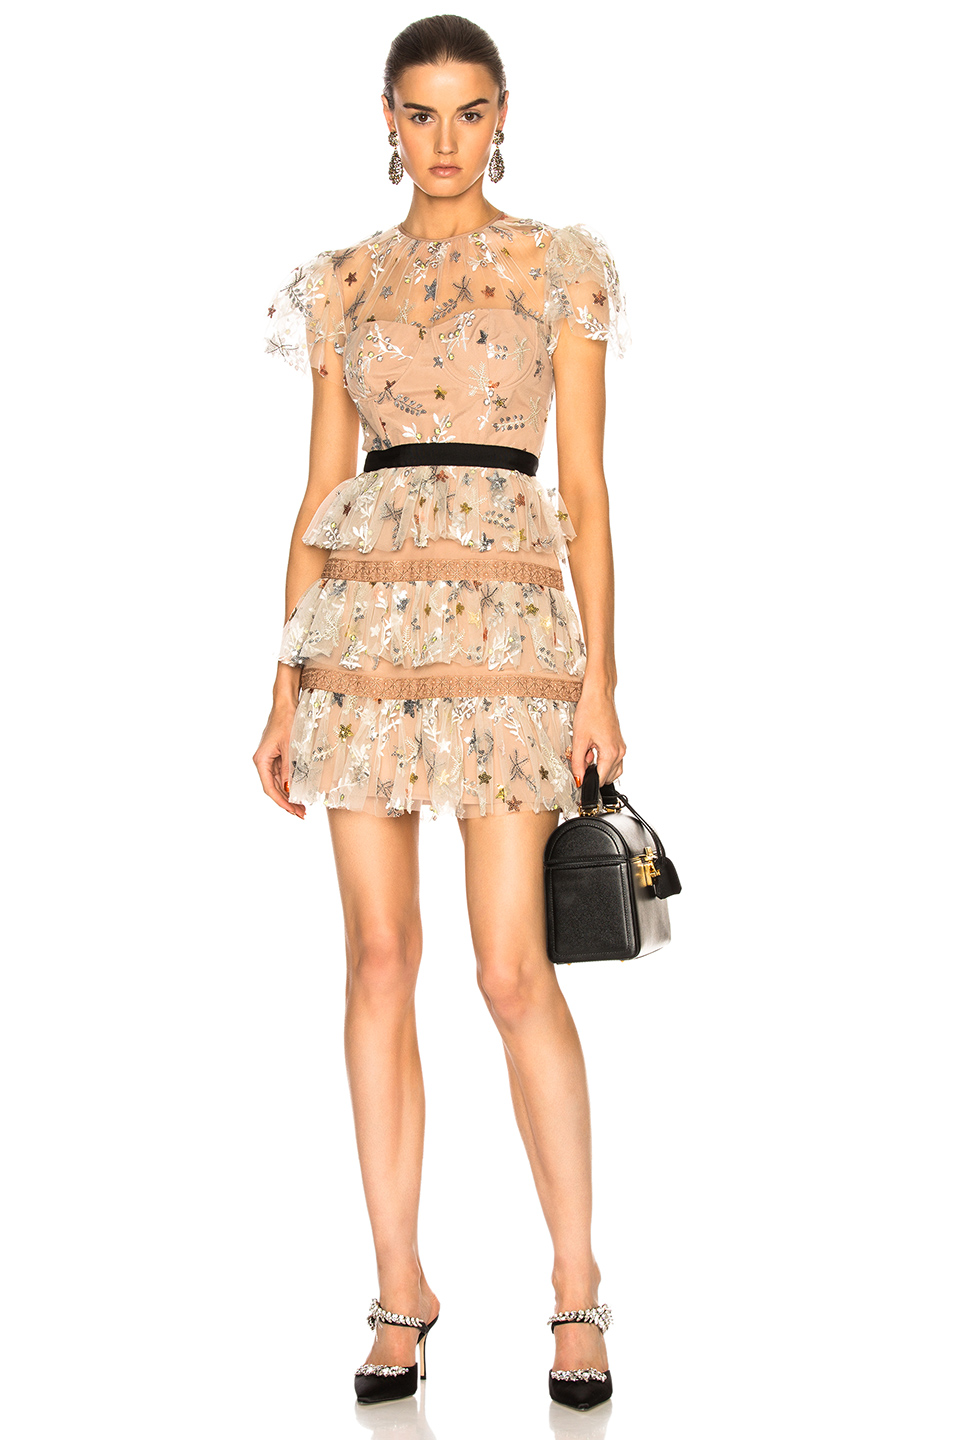 Self-Portrait - Star Mesh Tiered Dress$510 - AT FORWARD BY ELYSE WALKER